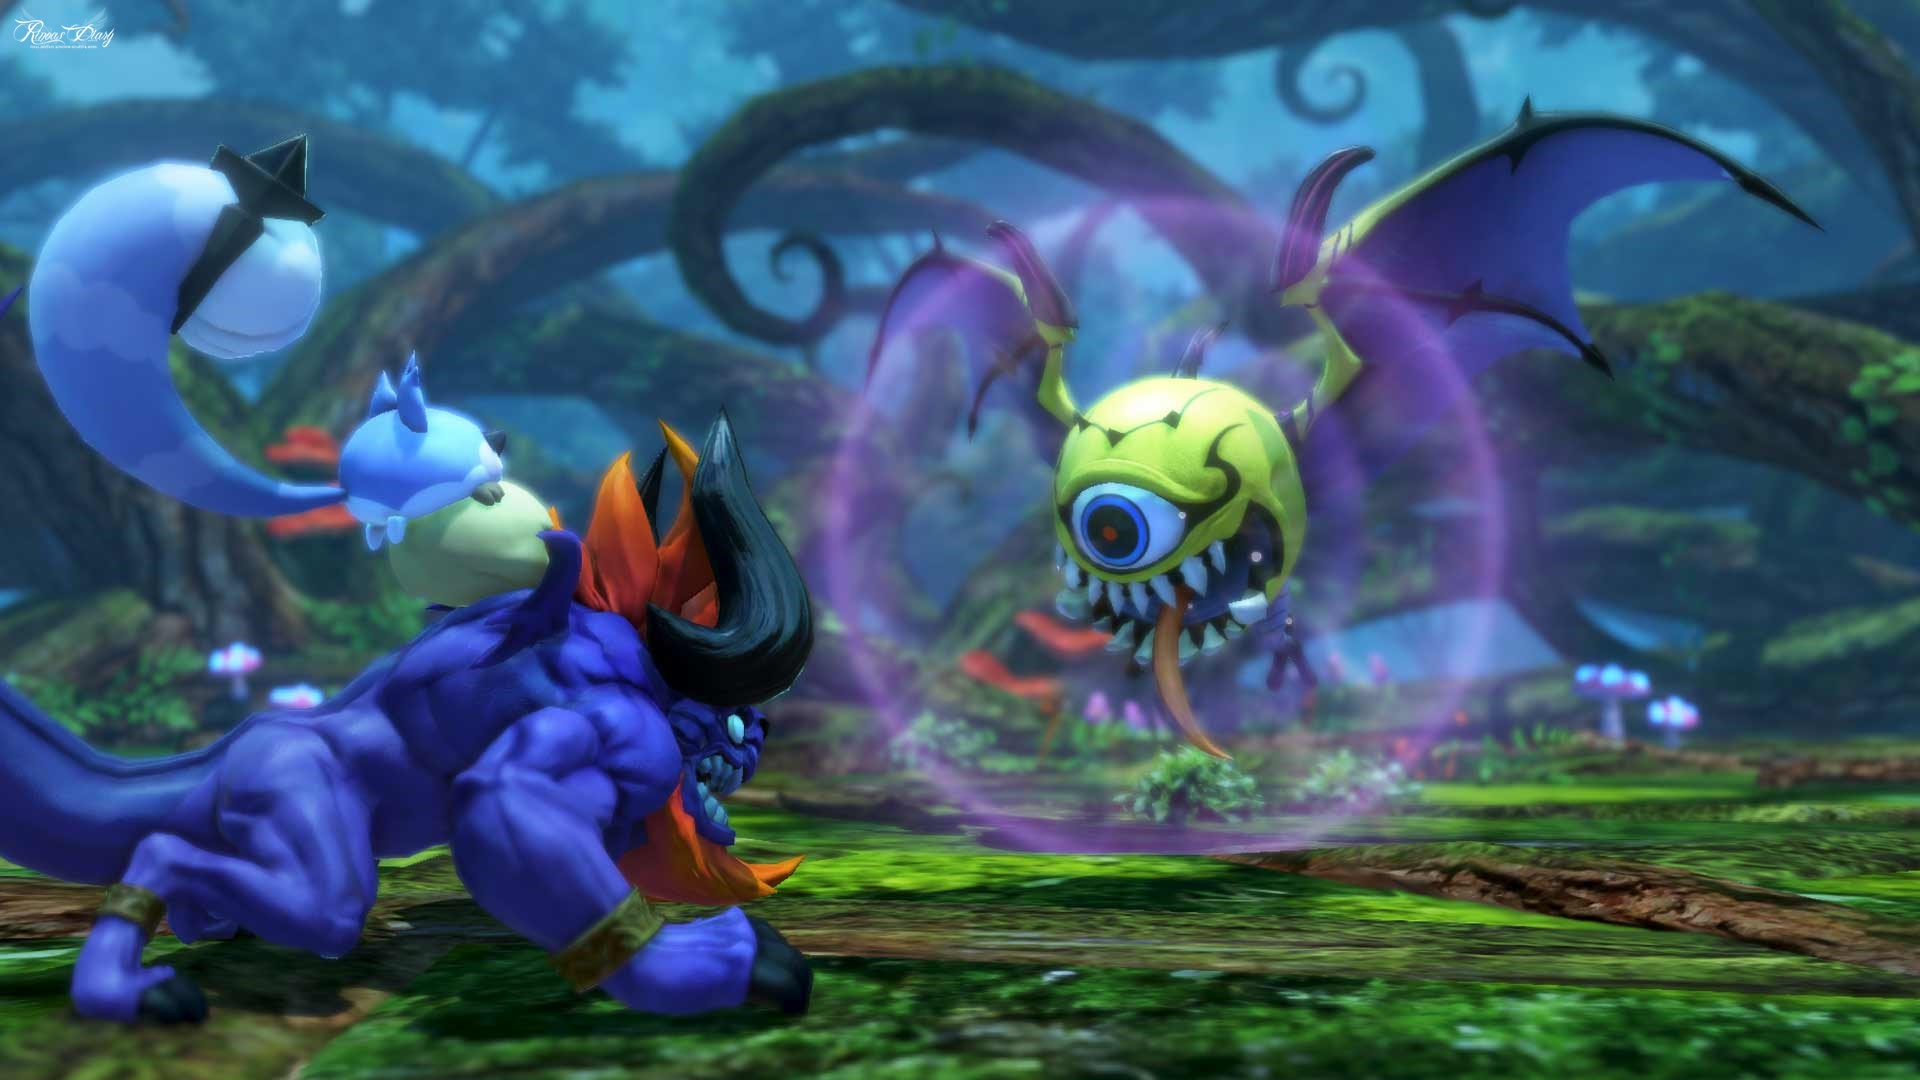 26 nuove immagini per World of Final Fantasy!